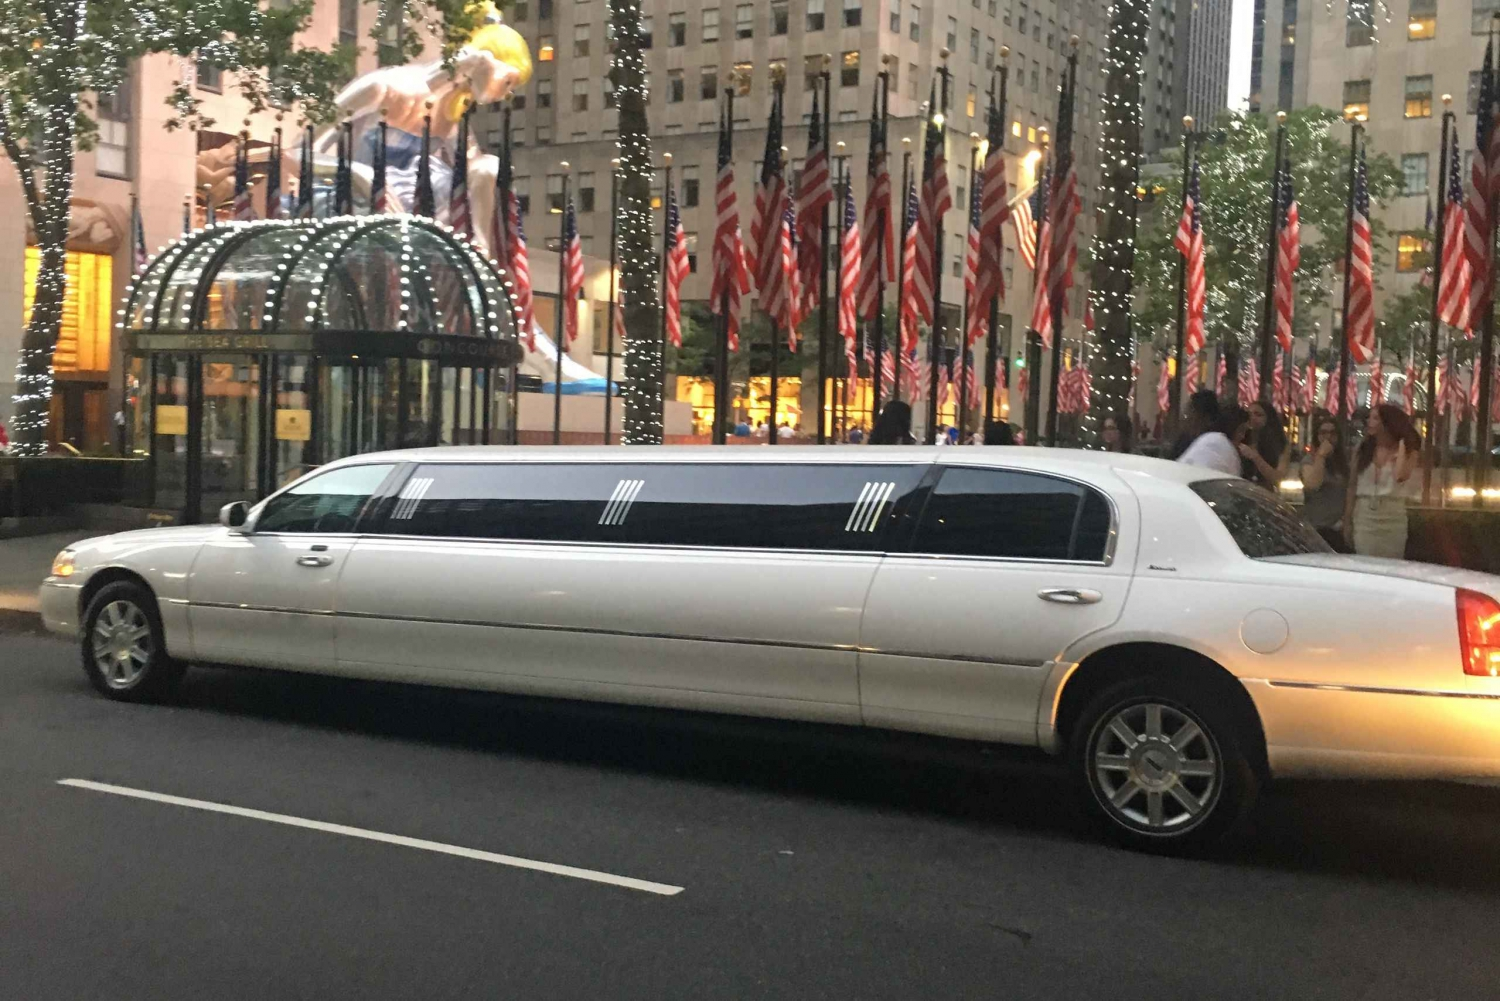 New JFK Airport Private Limousine Transfer